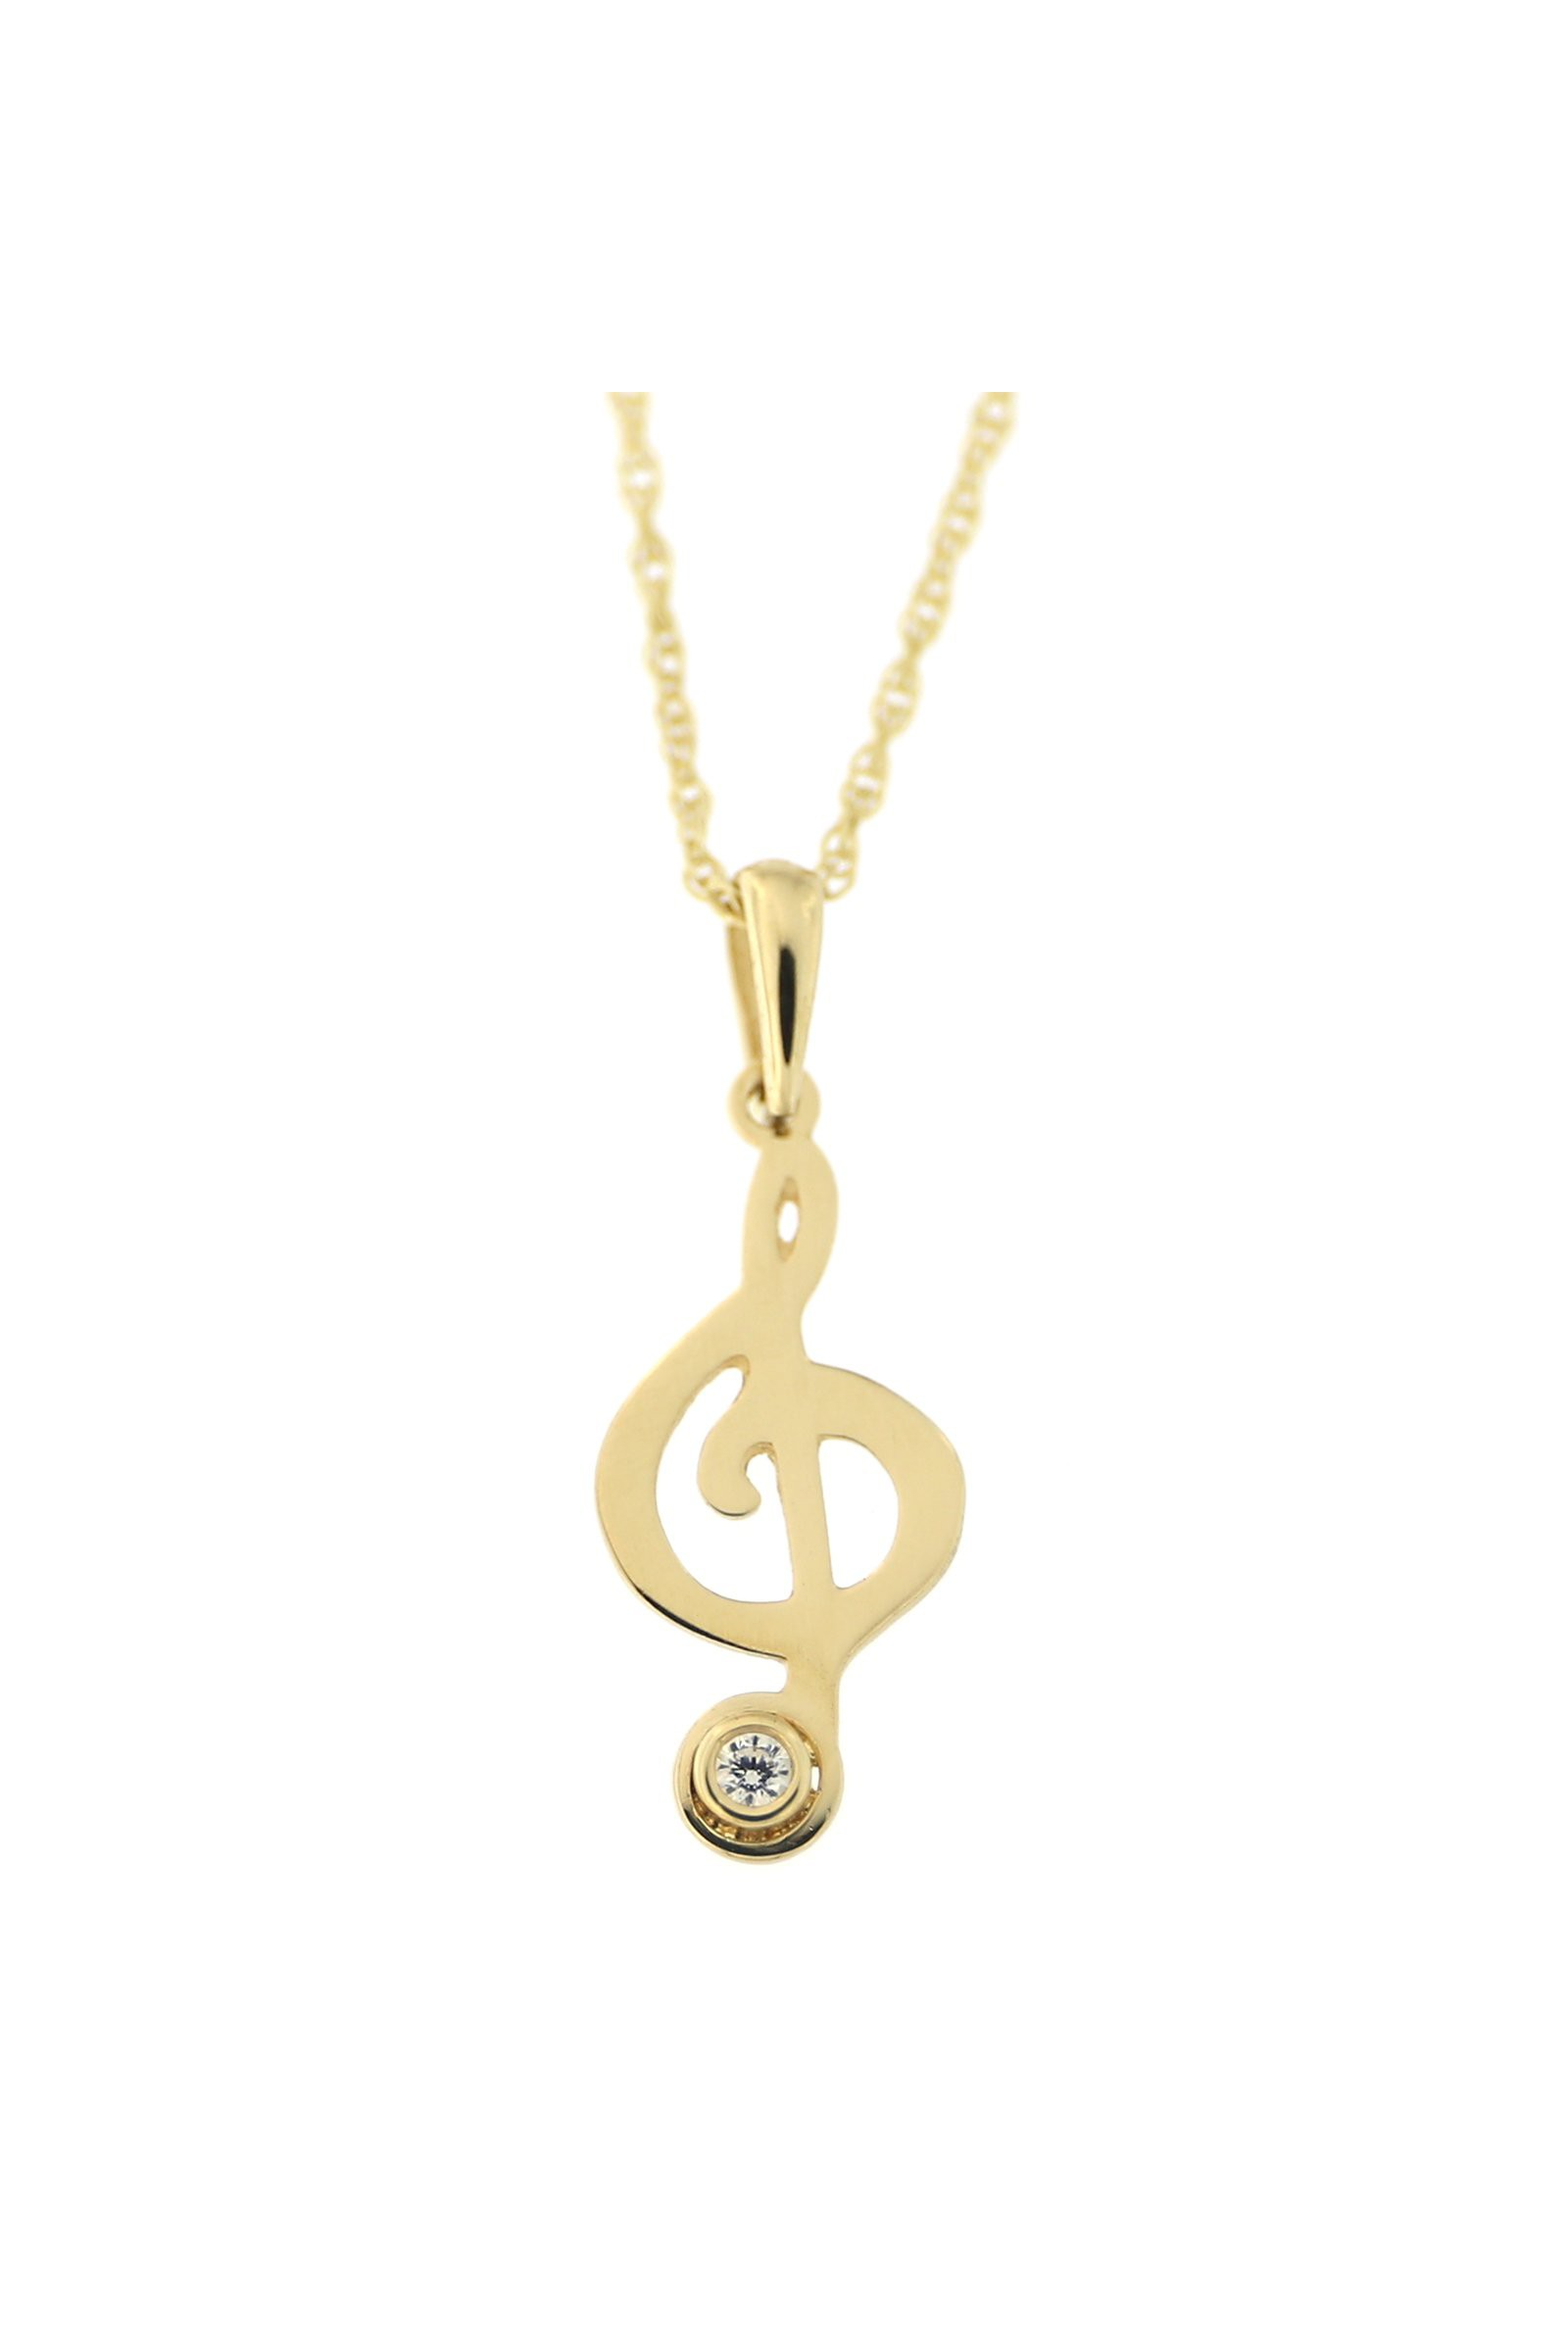 Diamond Alternatives Treble Clef Note Music Pendant Necklace White 14k over Base